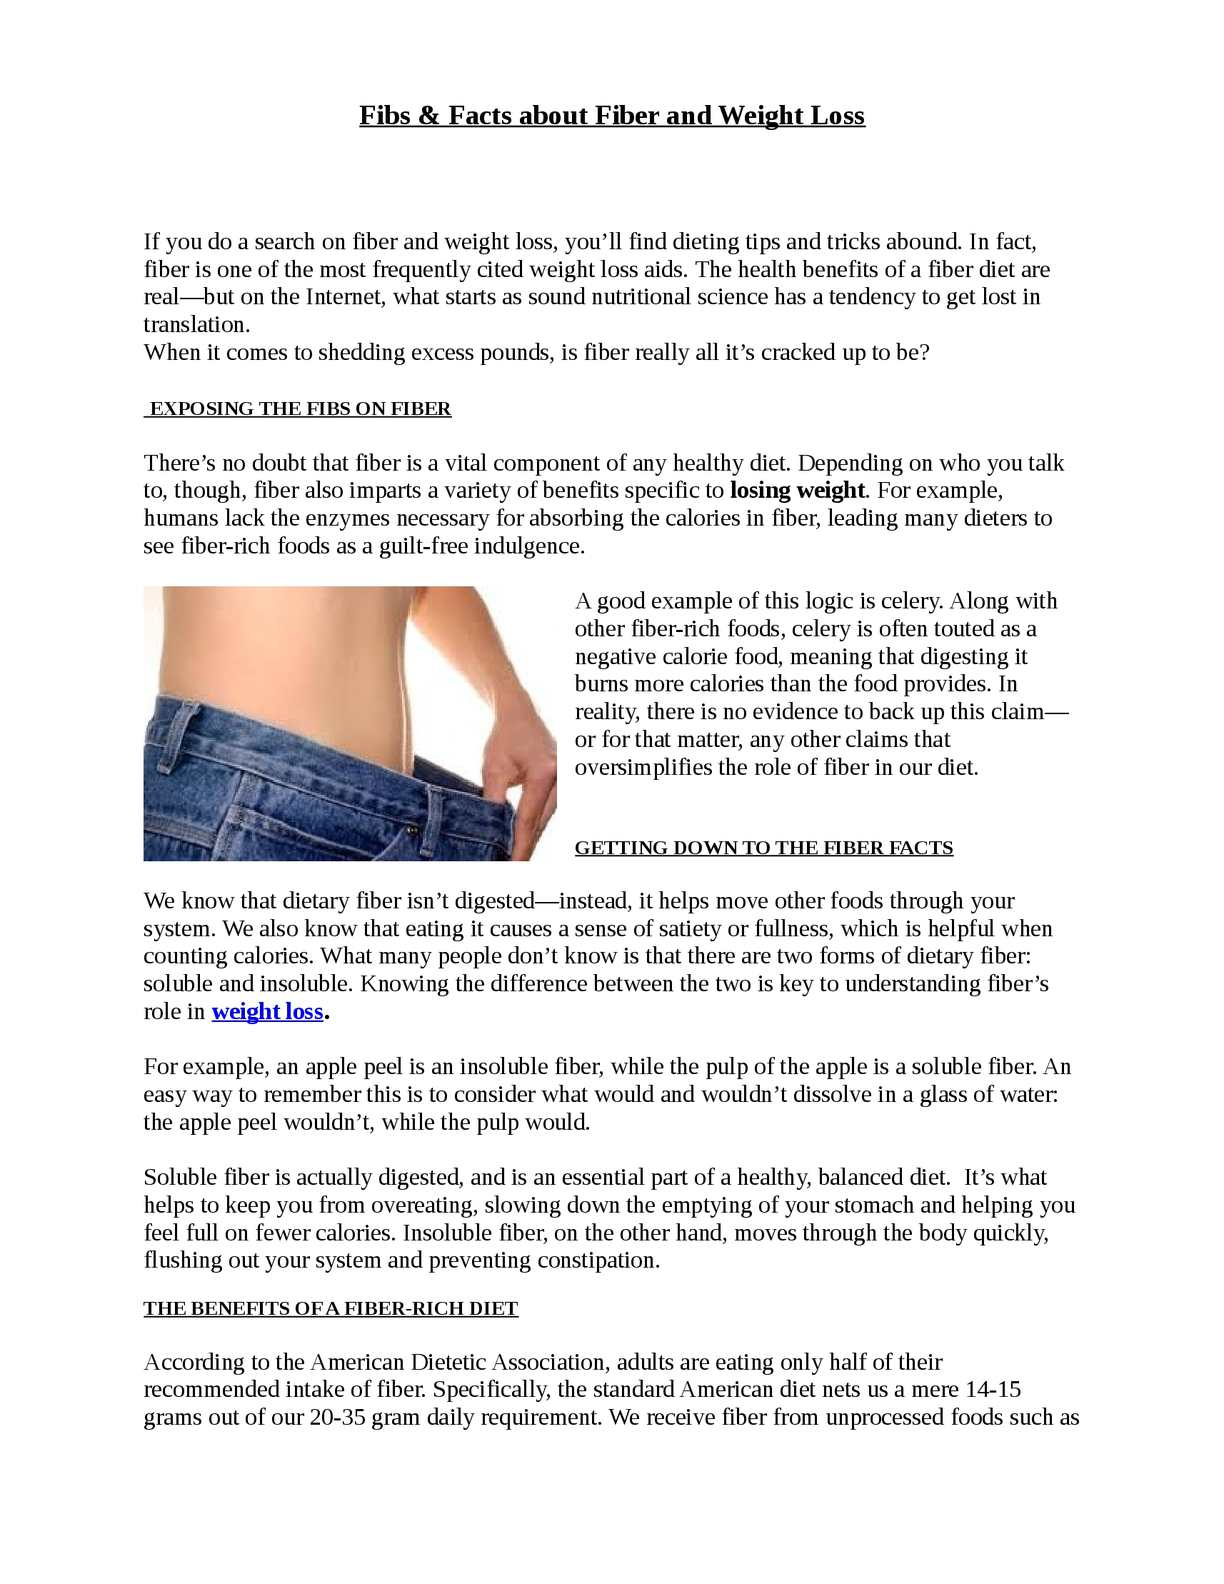 Calaméo - Fibs & Facts about Fiber and Weight Loss